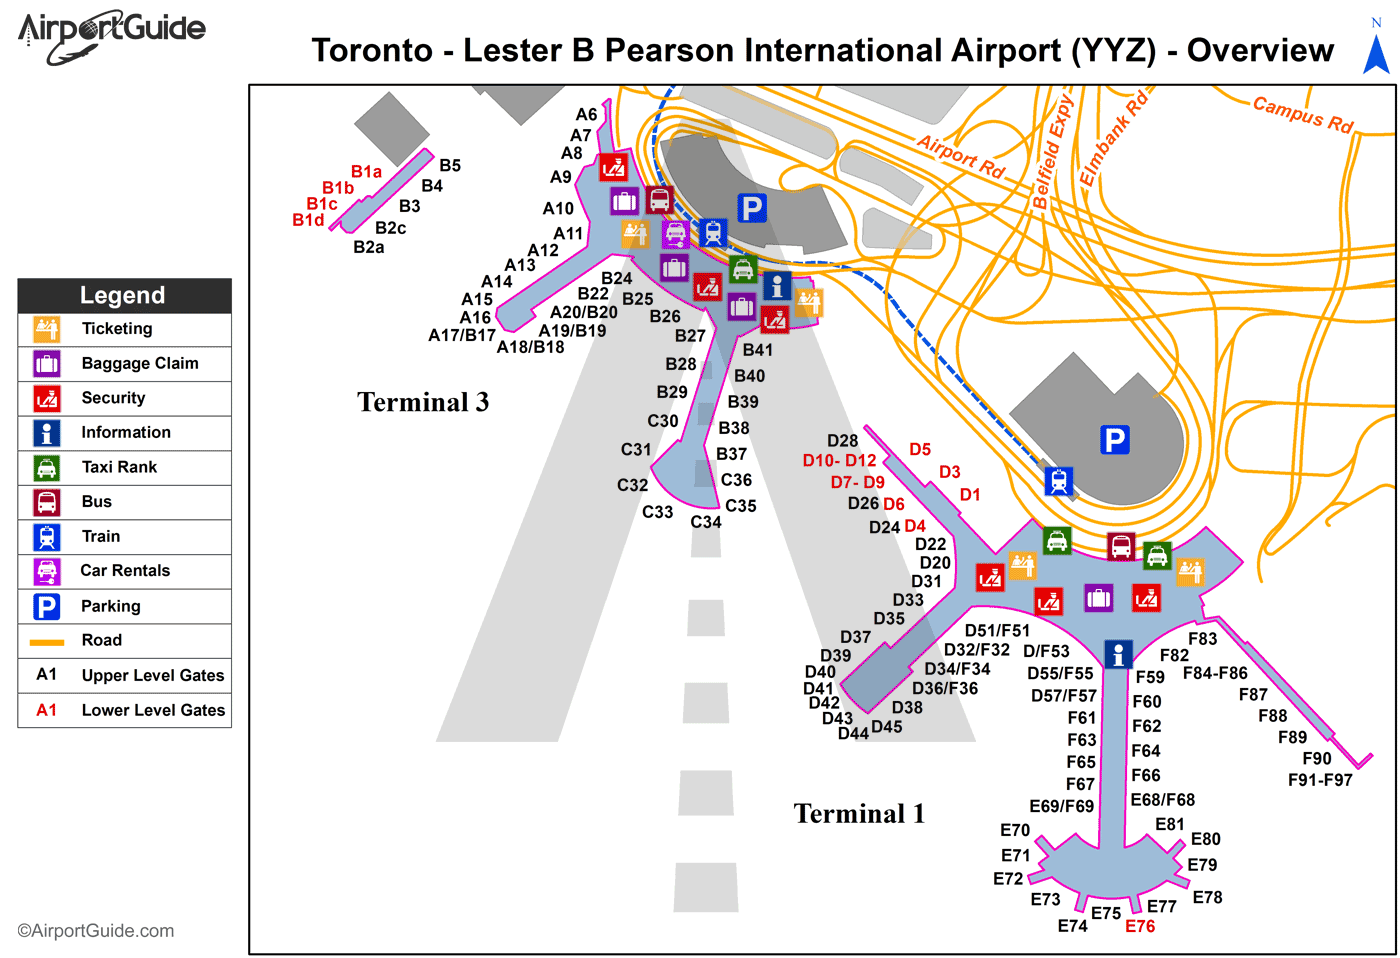 Toronto - Lester B Pearson International (YYZ) Airport Terminal Map - Overview